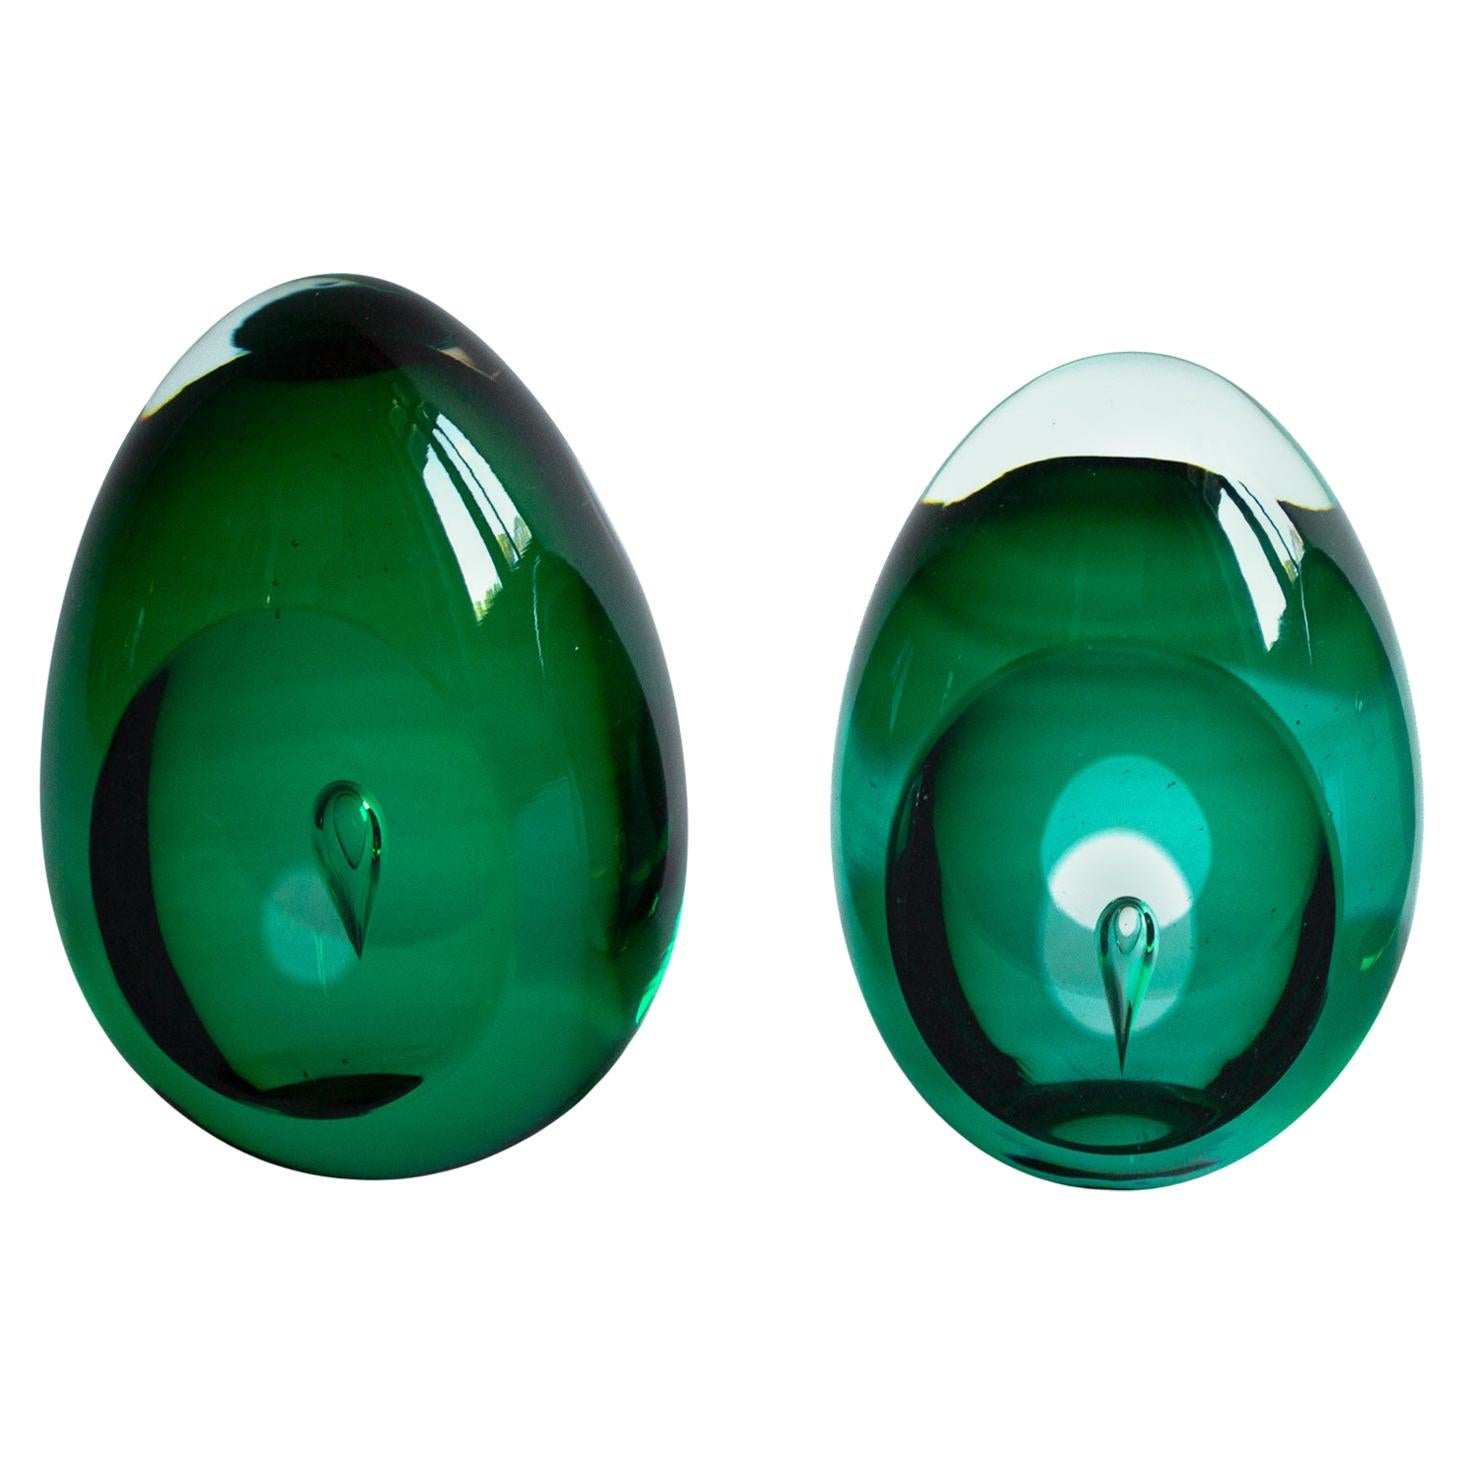 Scandinavian Modern Glass Sculpture by Swedish Designer Mona Morales-Schildt